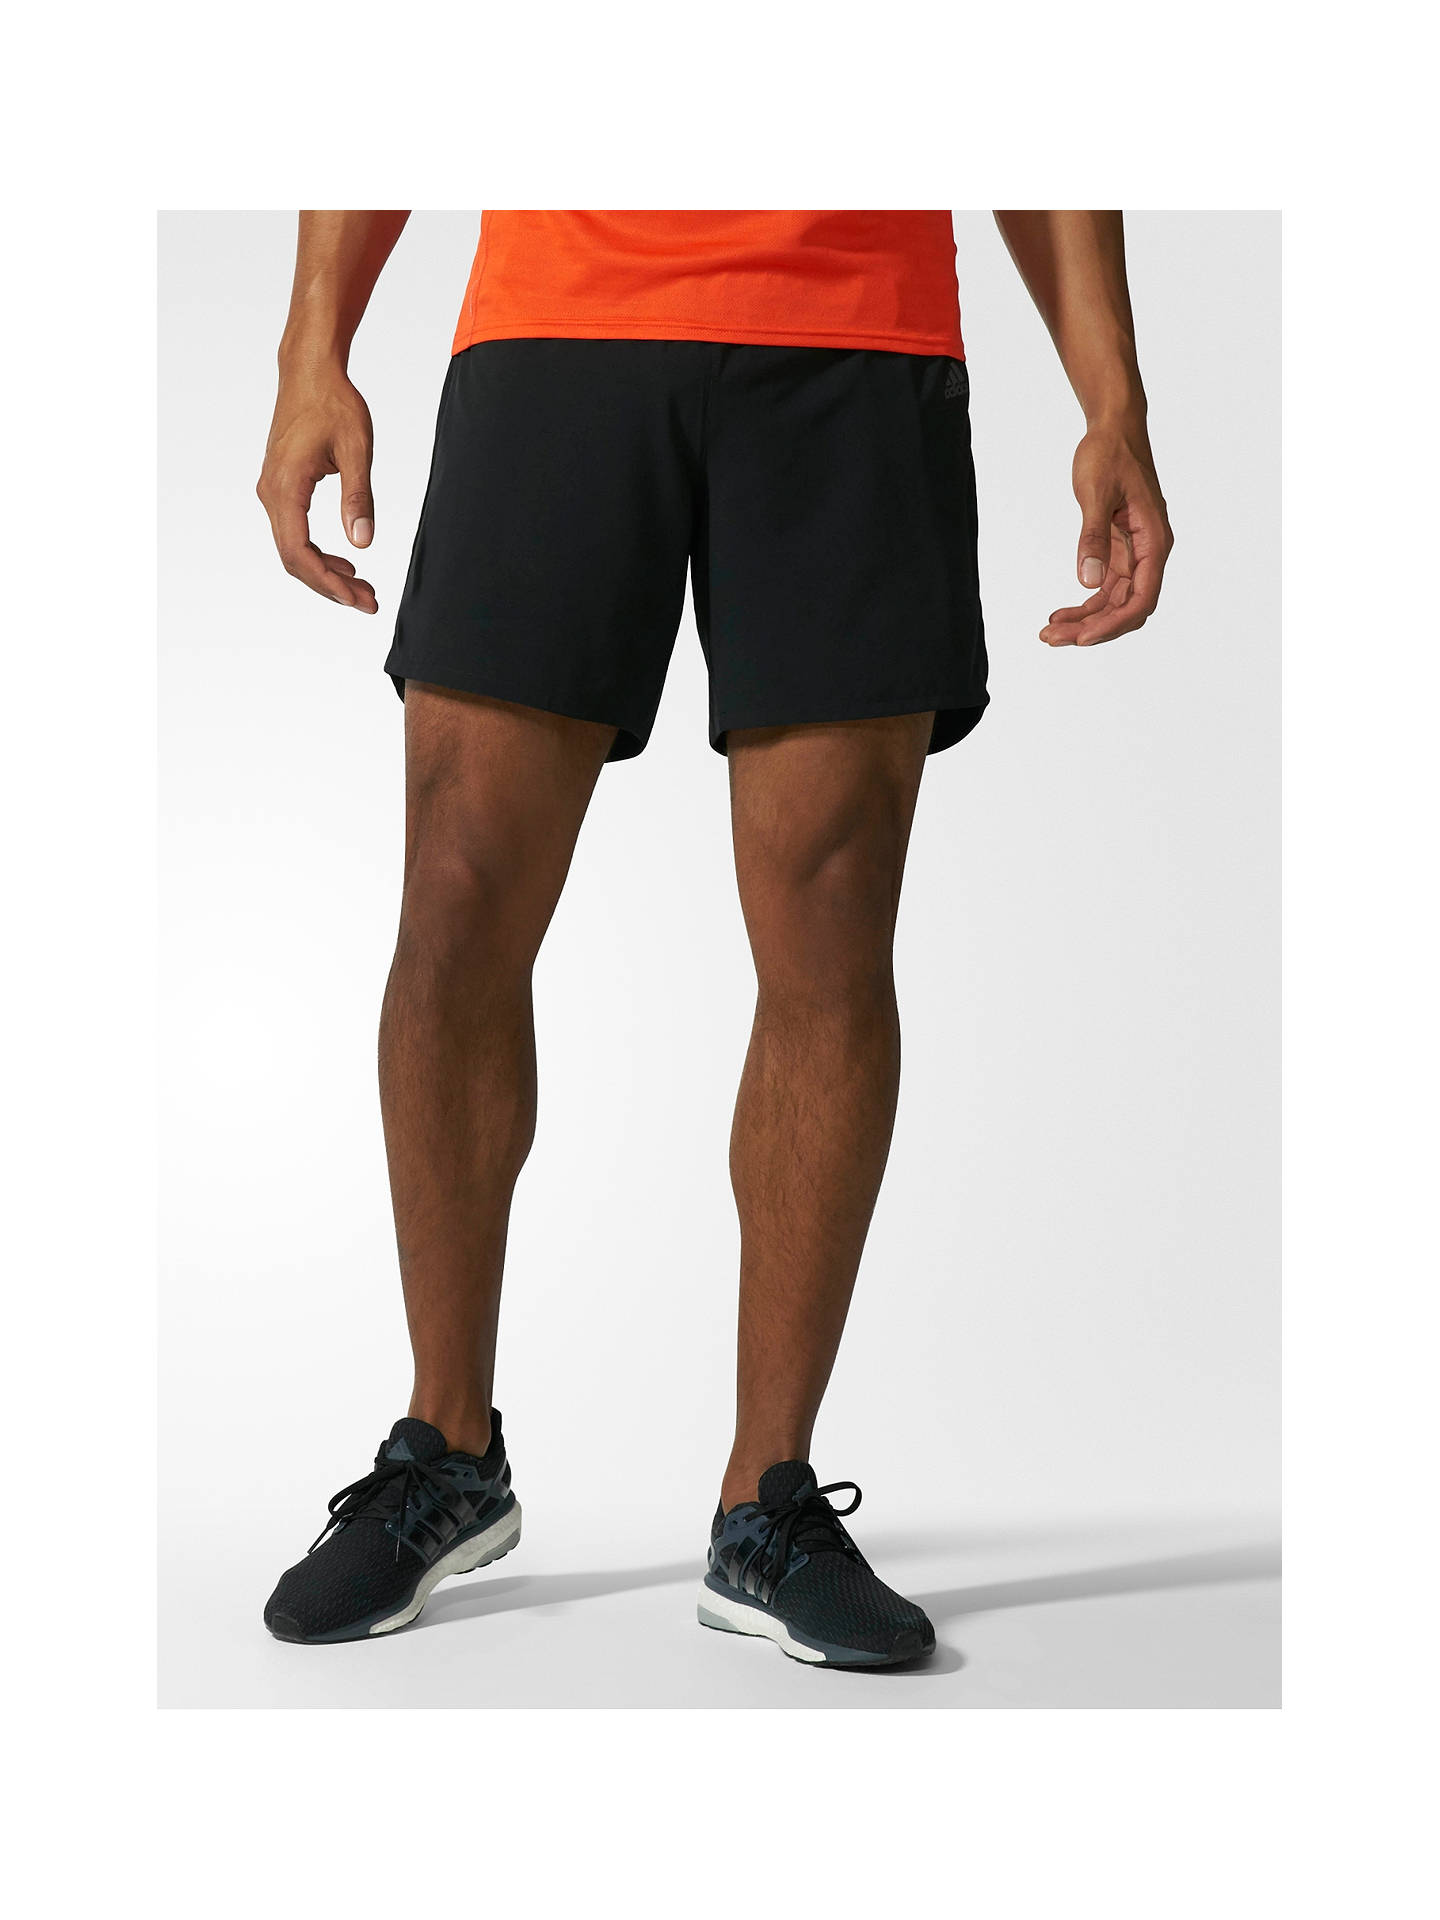 Buyadidas Response Reflective Logo Running Shorts, Black, S Online at johnlewis.com